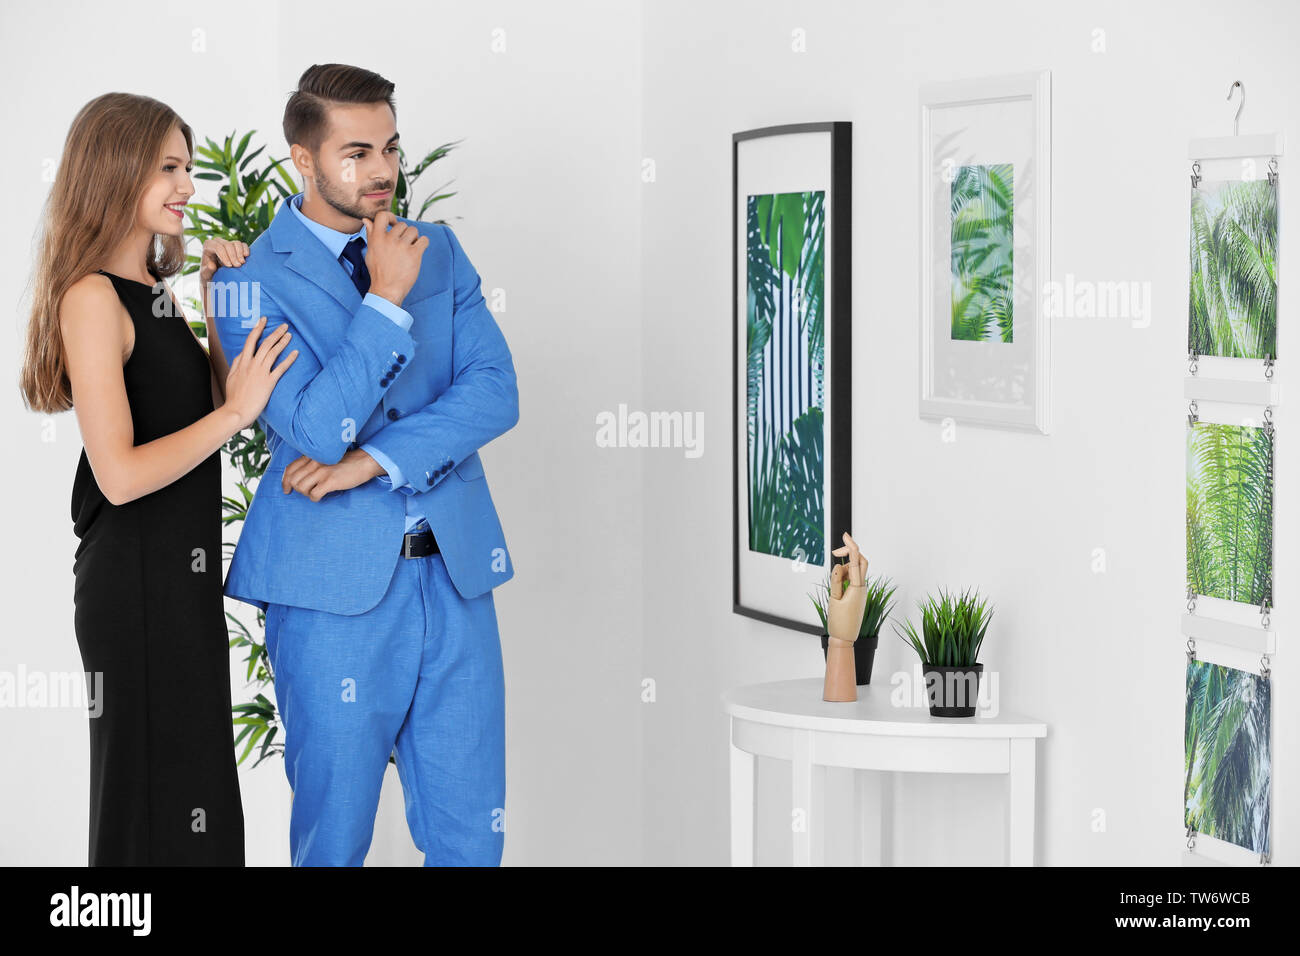 Couple in formal wear at art gallery exhibition - Stock Image